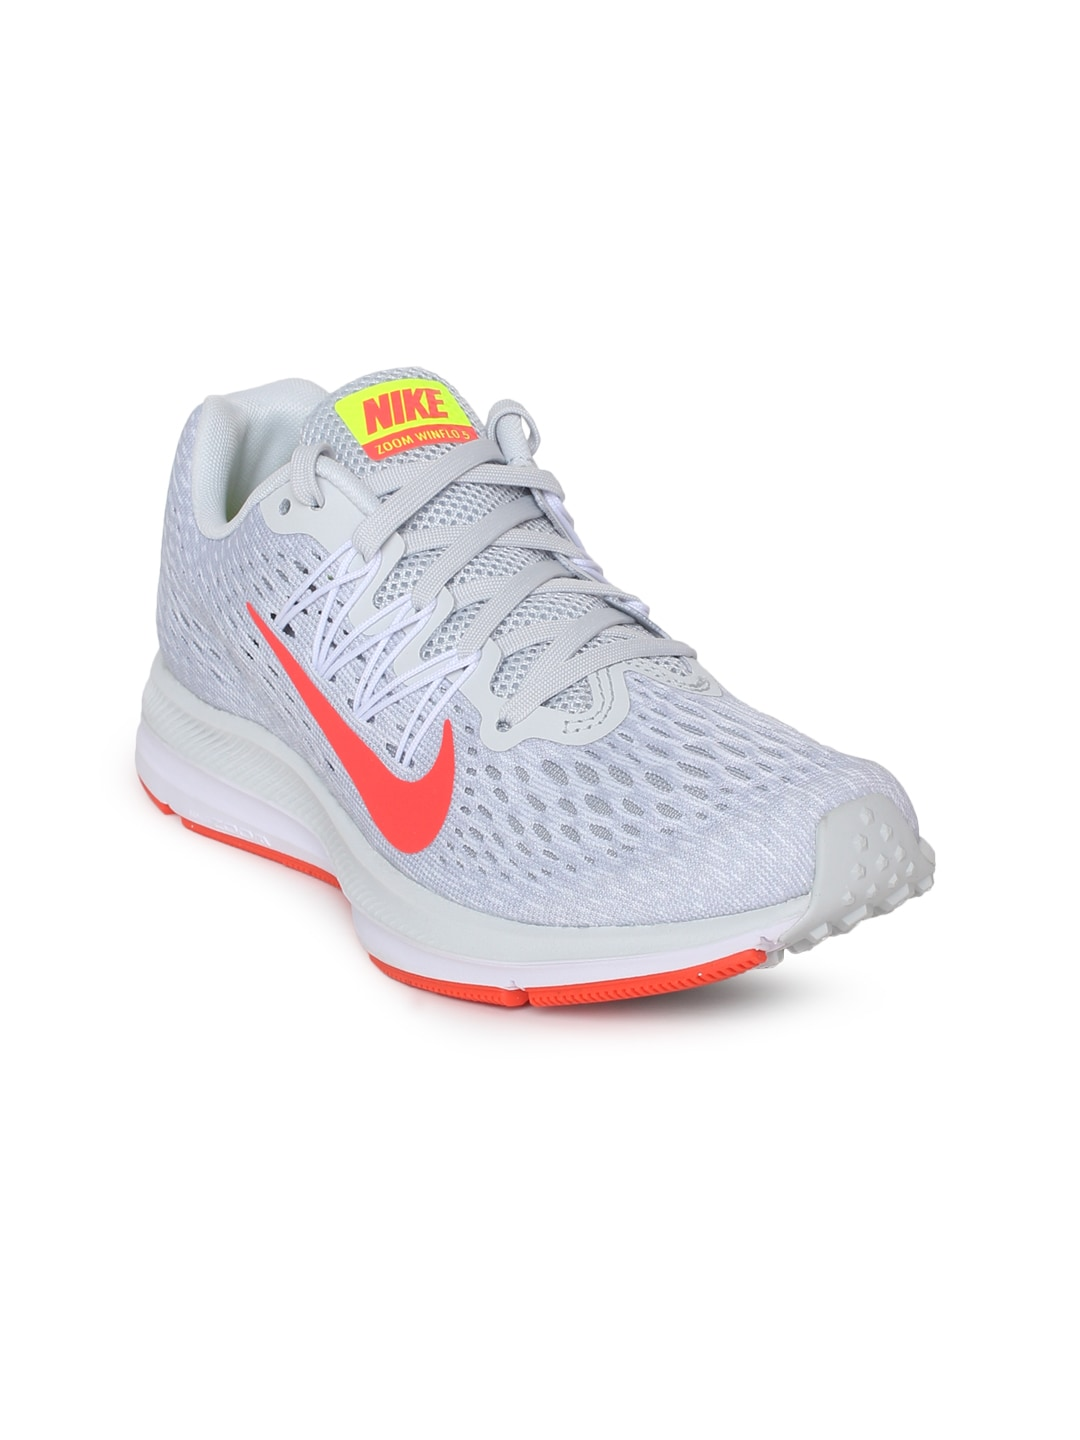 15add68520334d Buy Nike Women Pink Air Zoom Winflo 5 Running Shoes - Sports Shoes ...